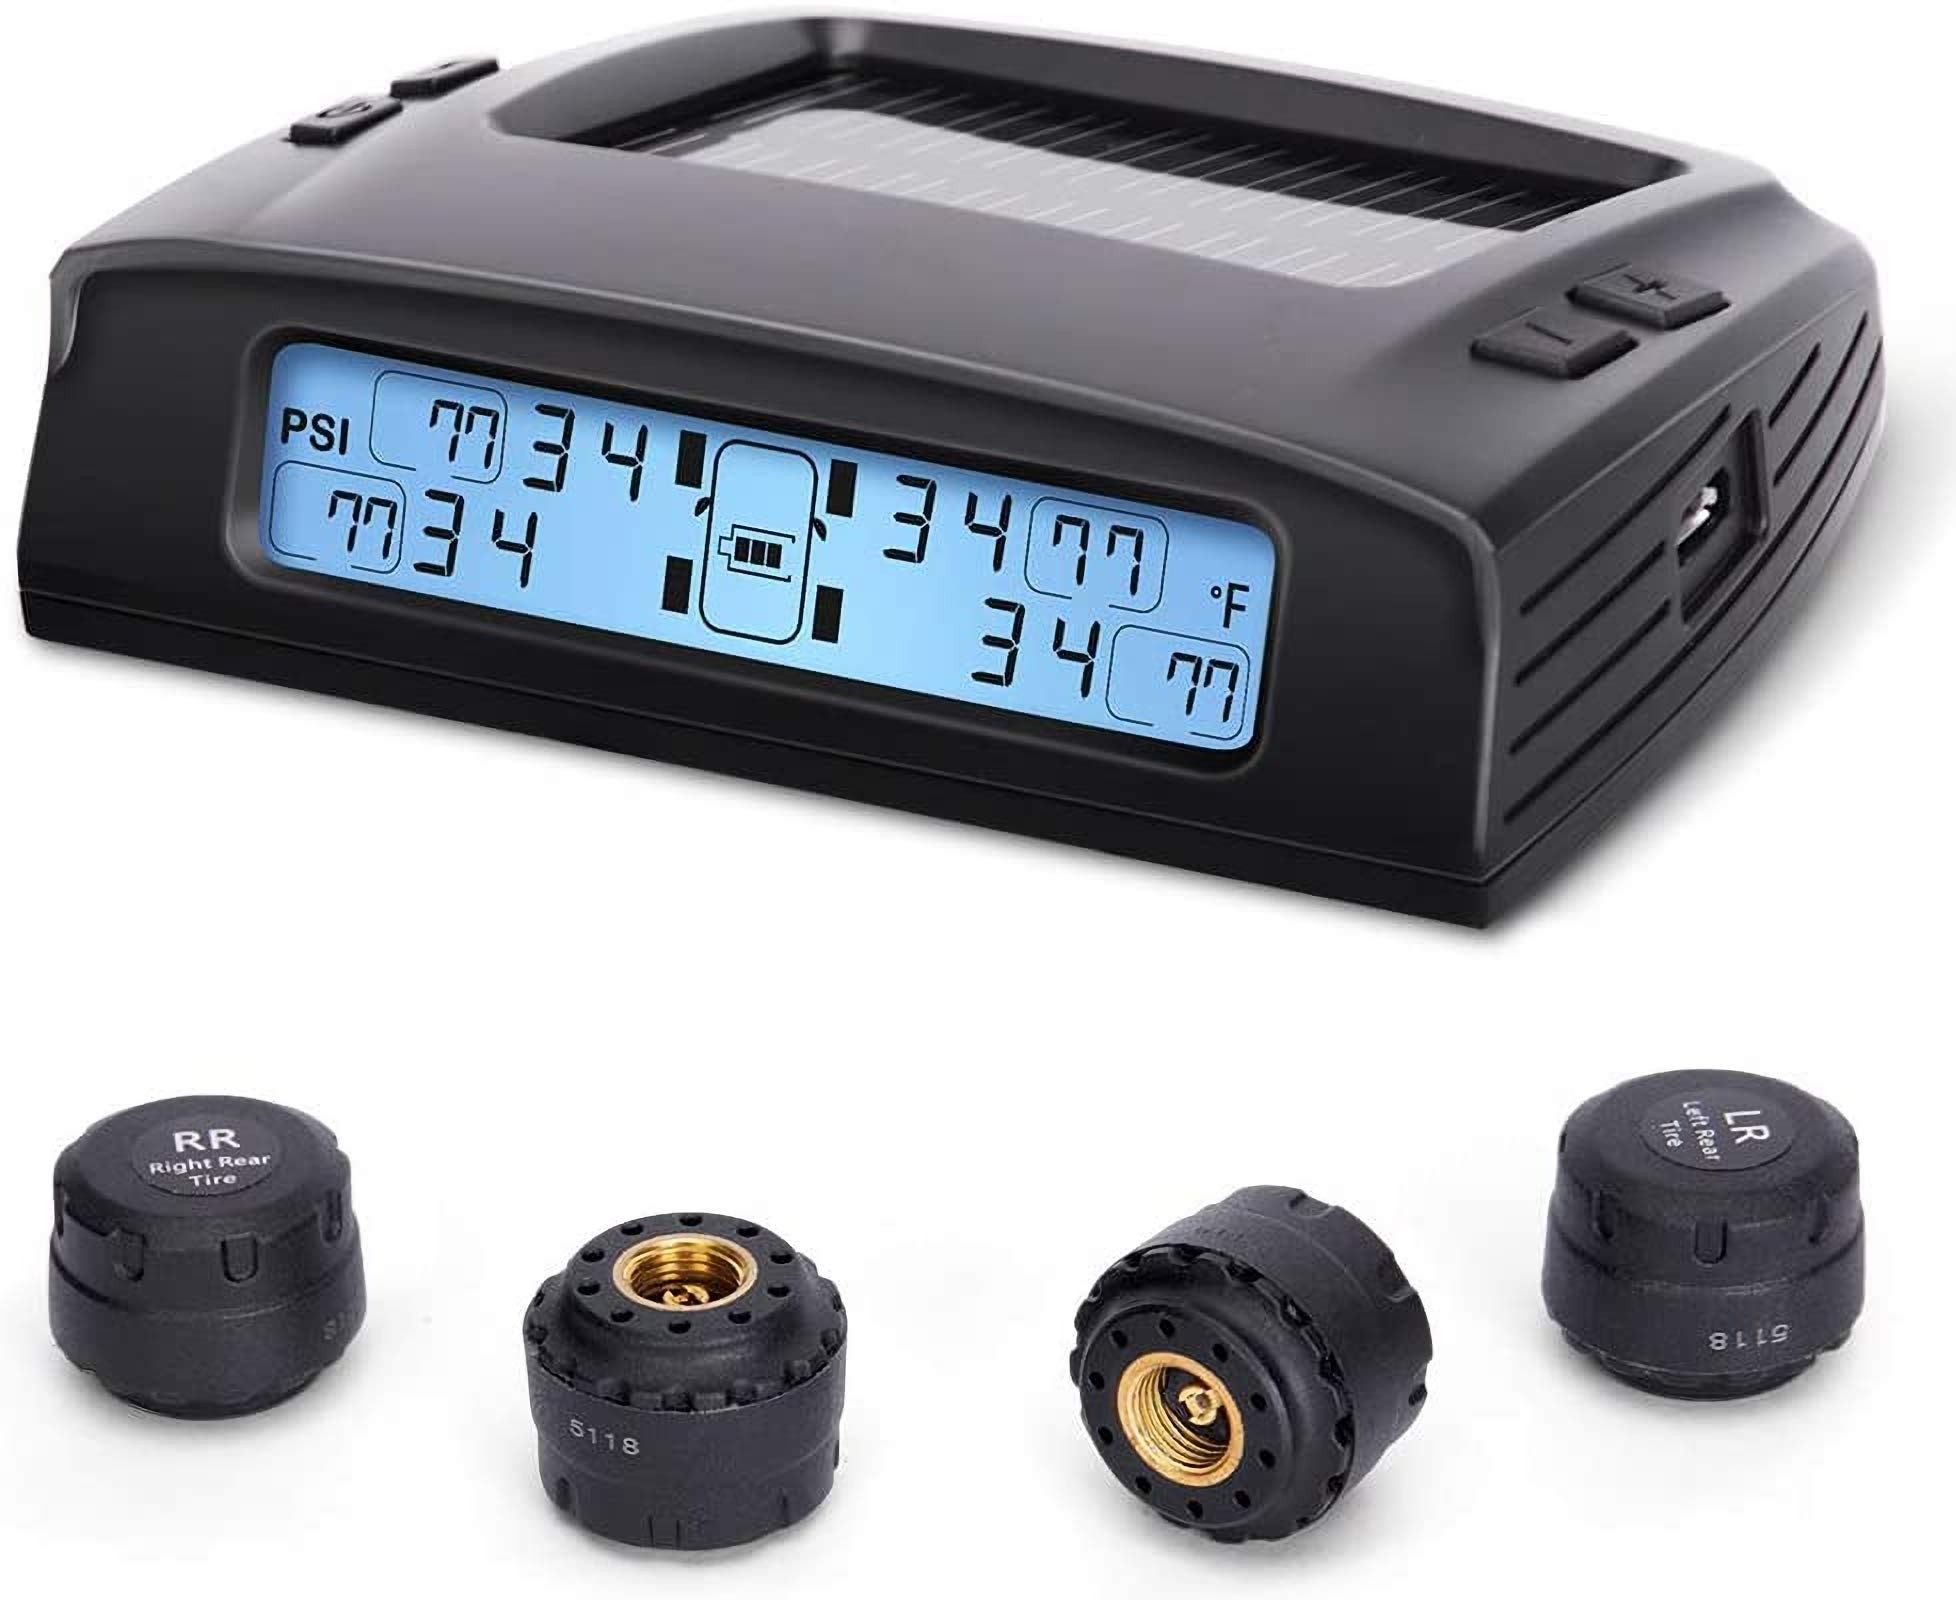 Tymate Tire Pressure Monitoring System-Solar Charge, 5 Alarm Modes, Auto Backlight & Smart LCD Display, Auto Sleep Mode, with 4 External Tpms Sensor (0-87 PSI)